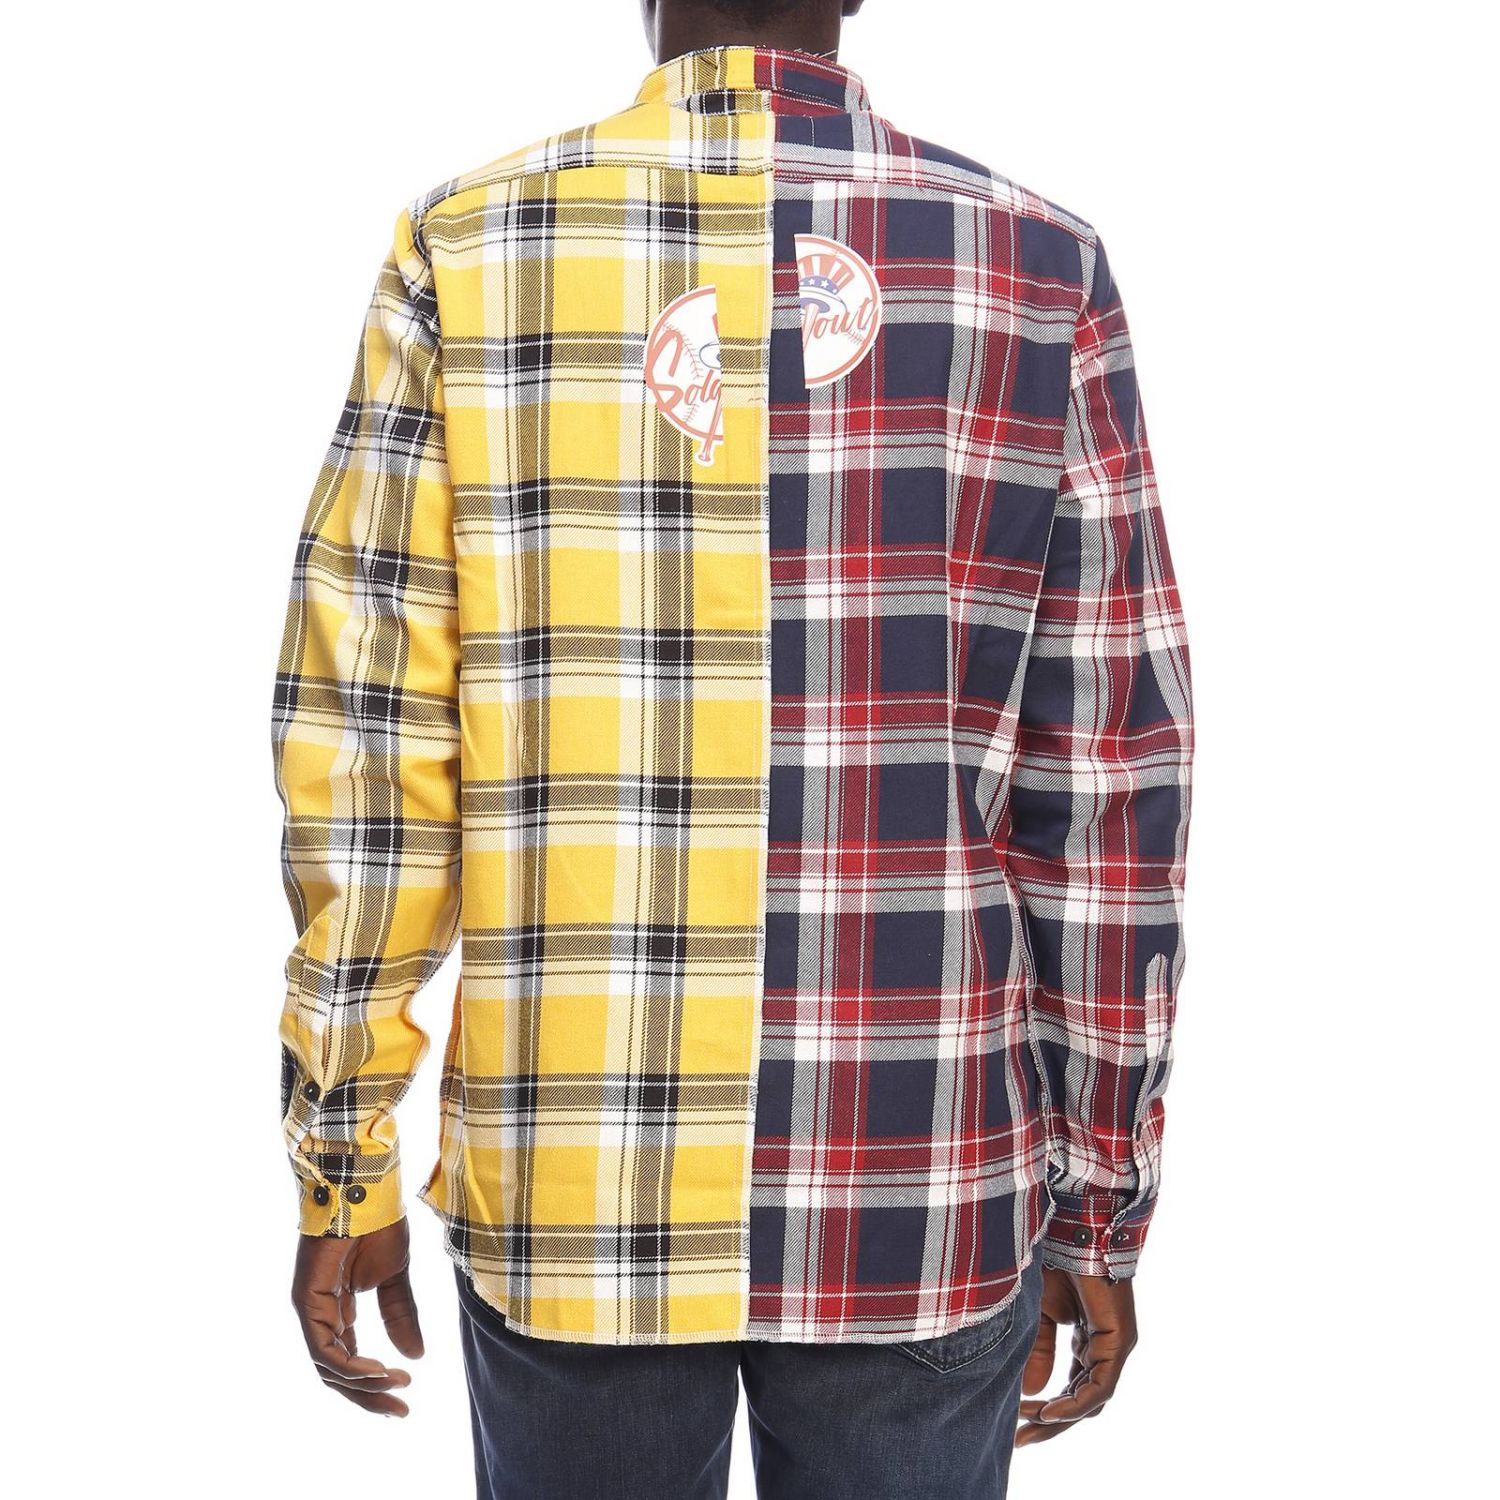 Camisa hombre Sold Out amarillo 3